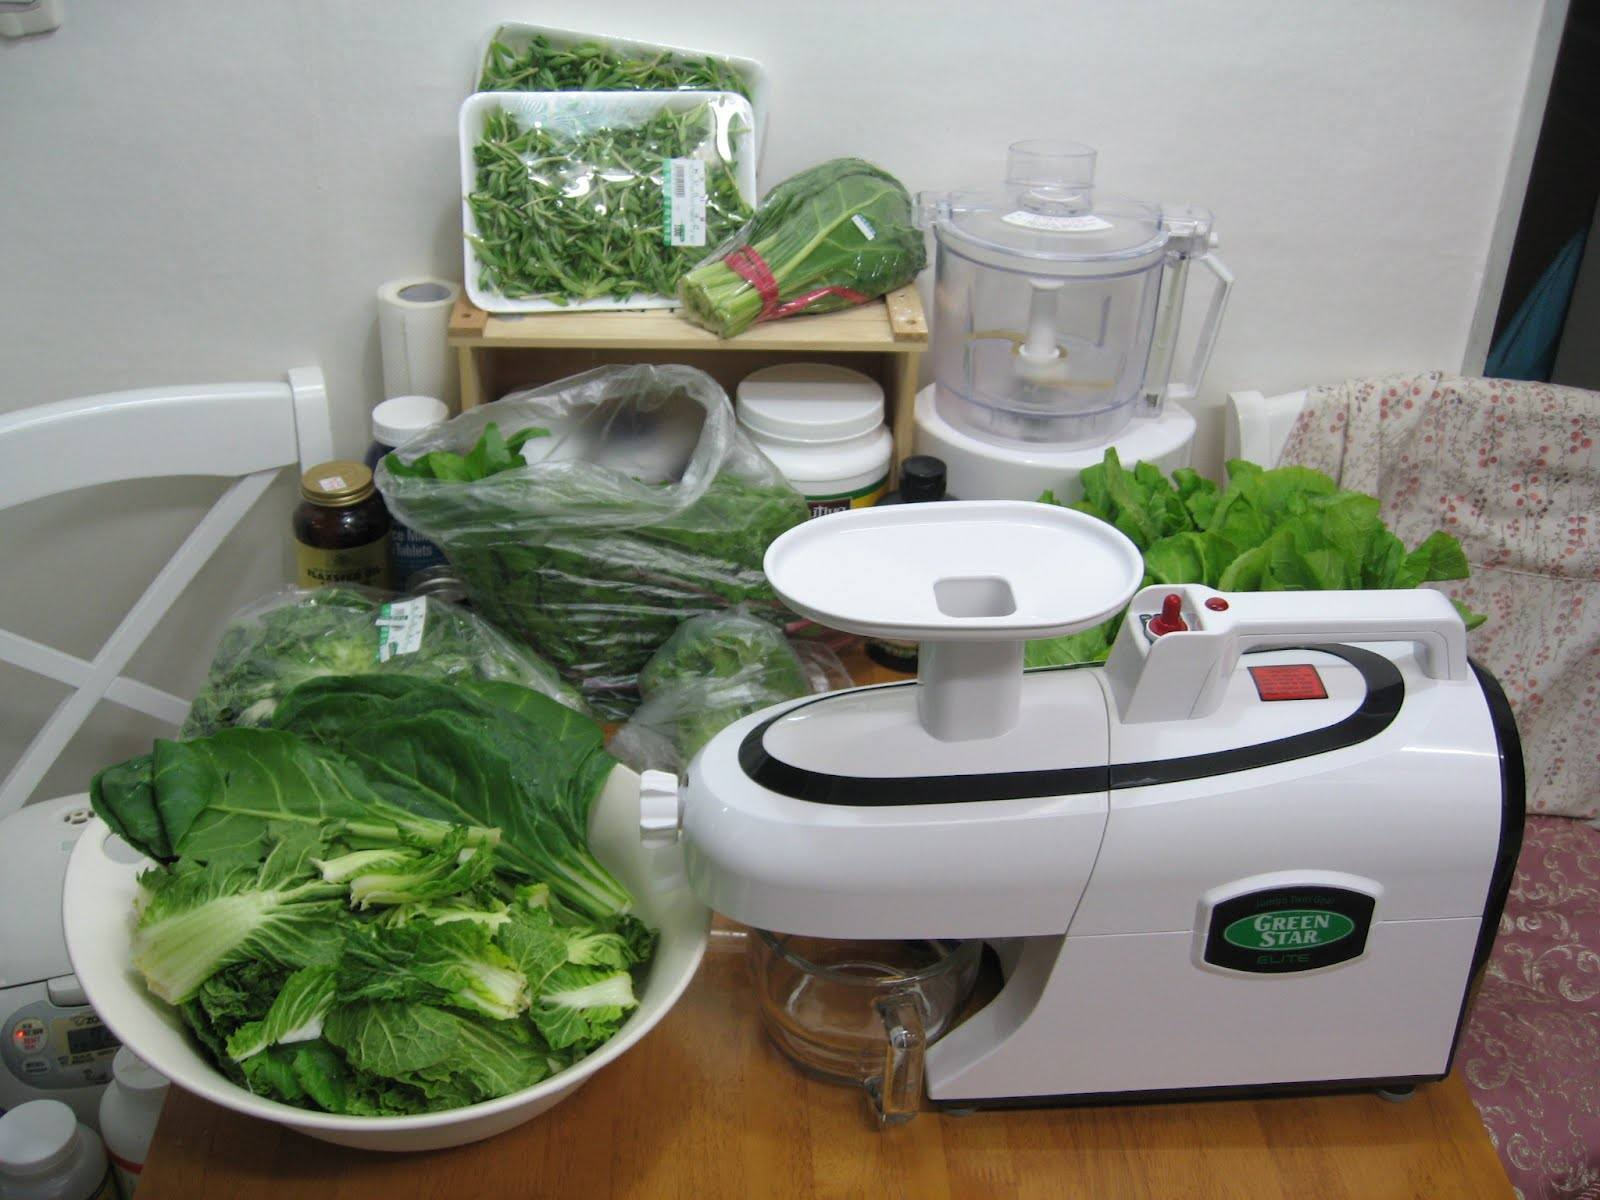 omega 8006 for leafy greens